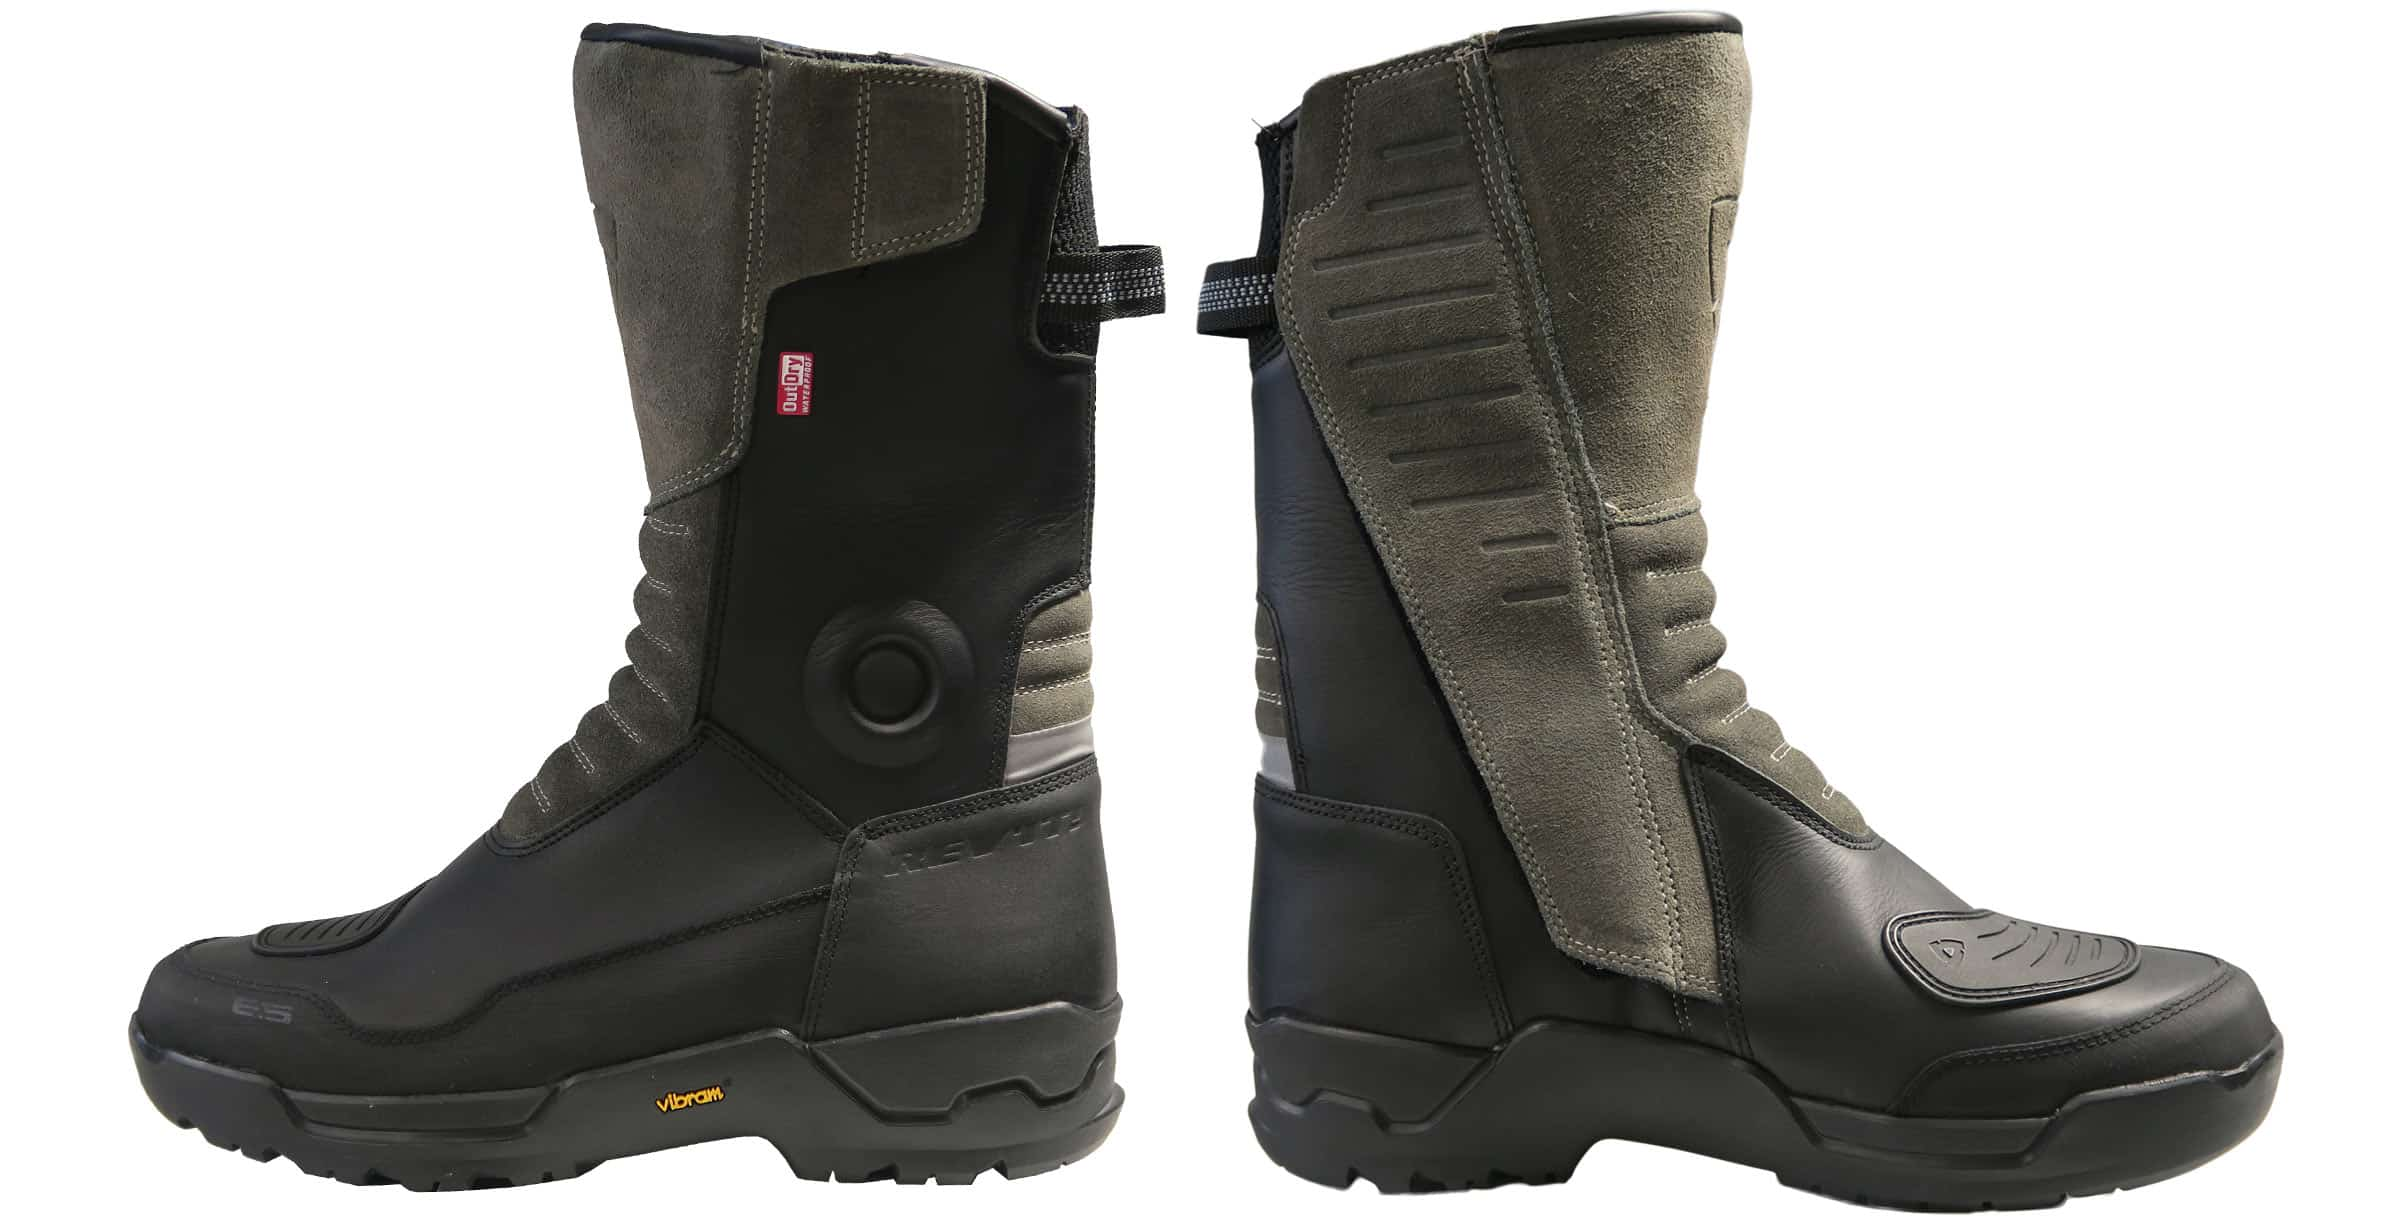 Rev It Gravel Adventure Motorcycle Boots Review